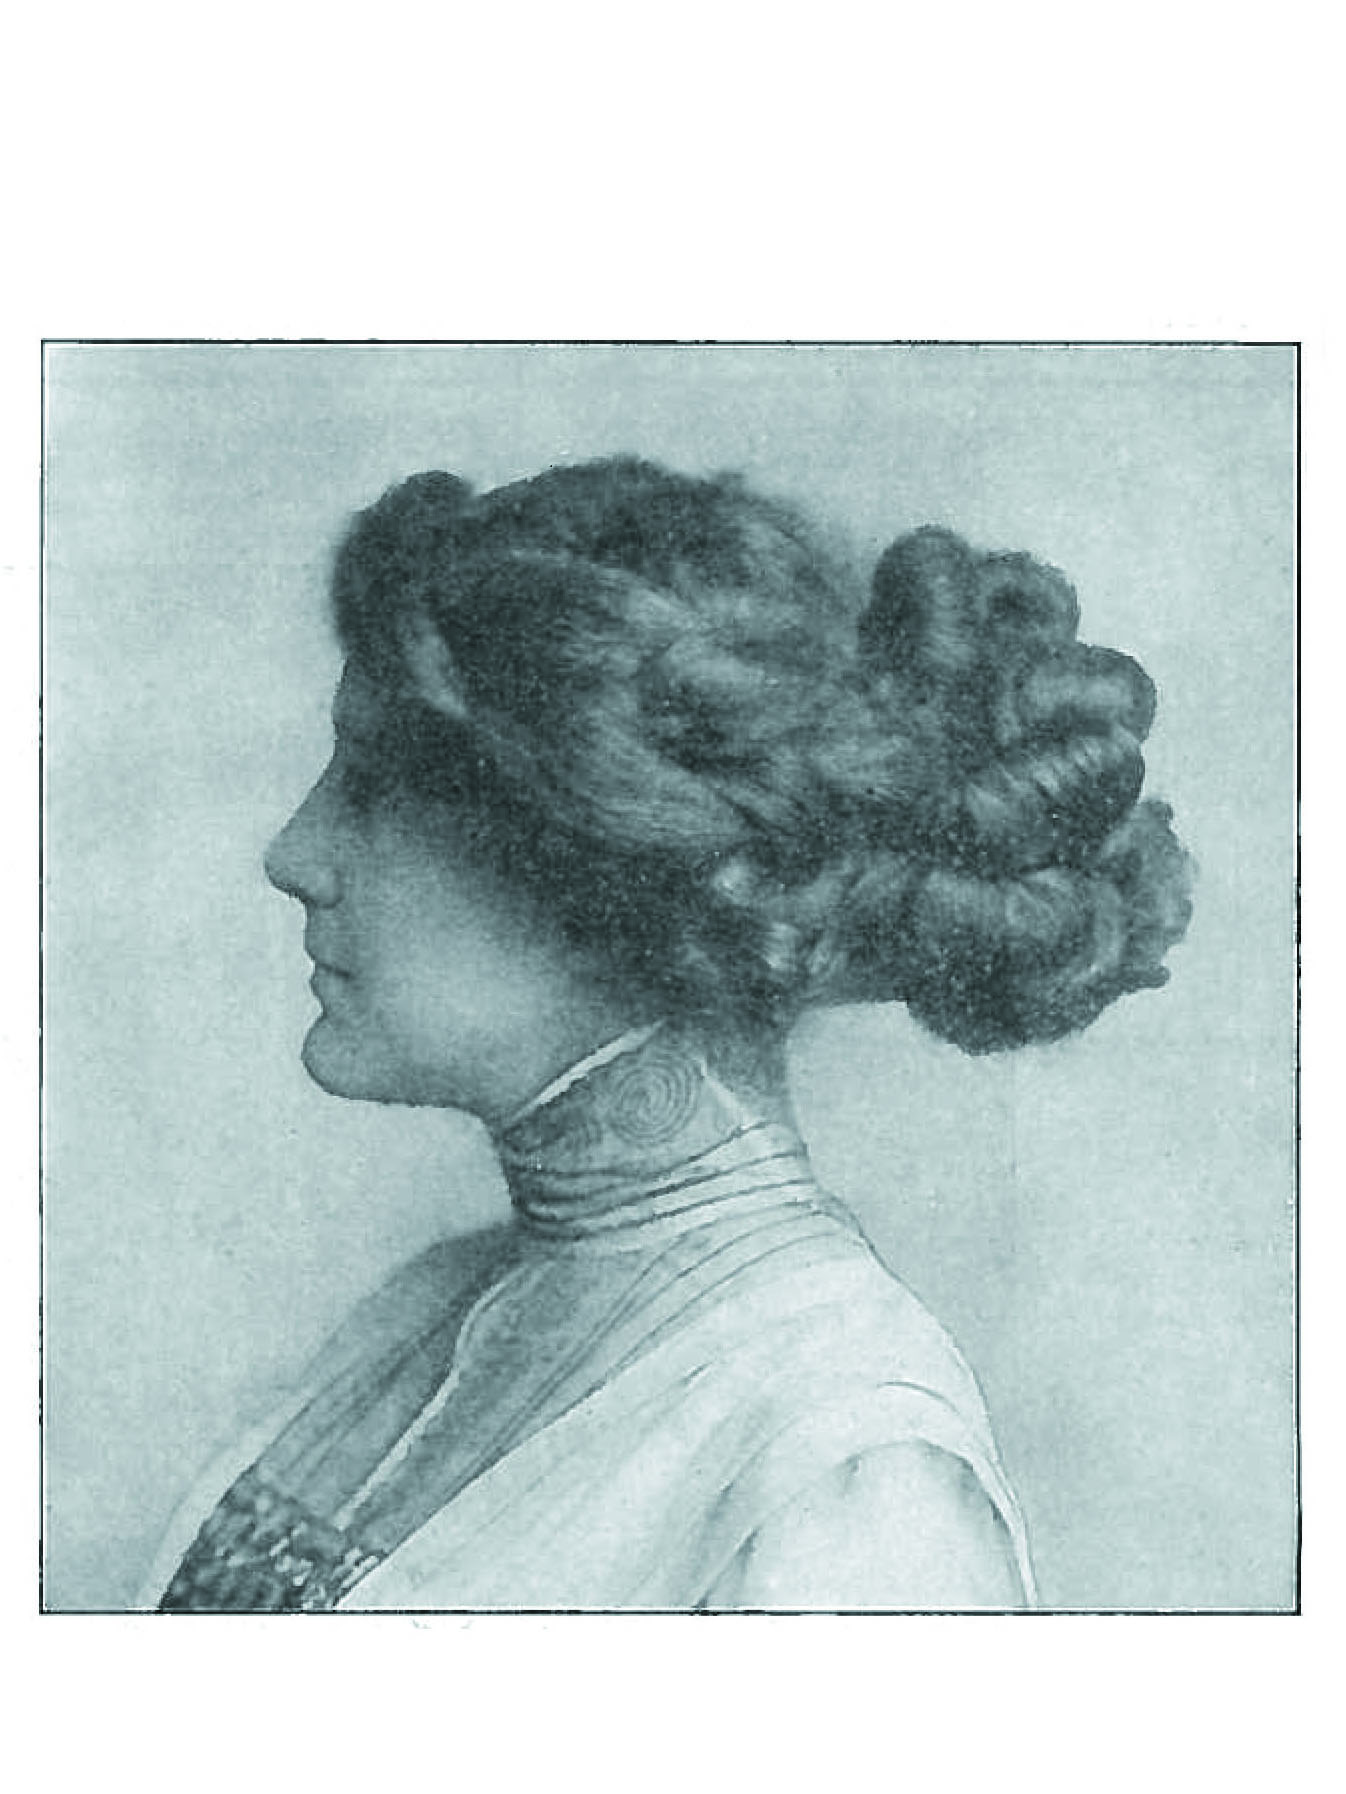 New York City's own House of Butzel was known to be one of the biggest manufacturers of hair goods like this fashionable Coronet Braid.